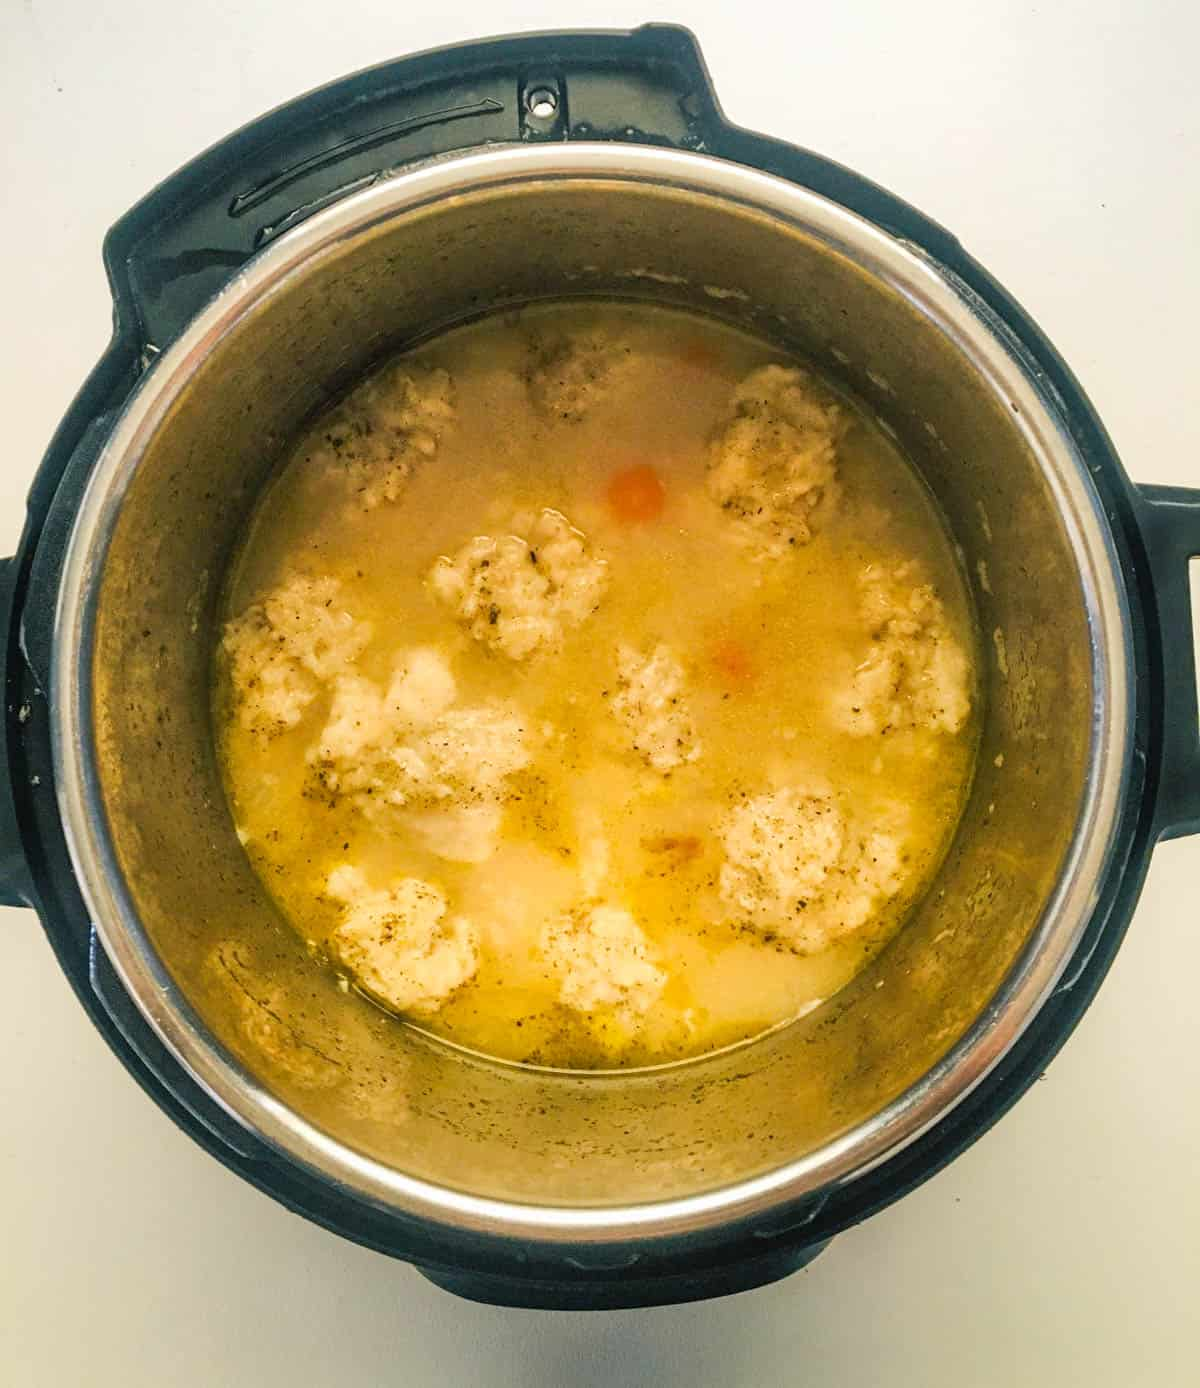 instant pot filled with cooked chicken and dumplings